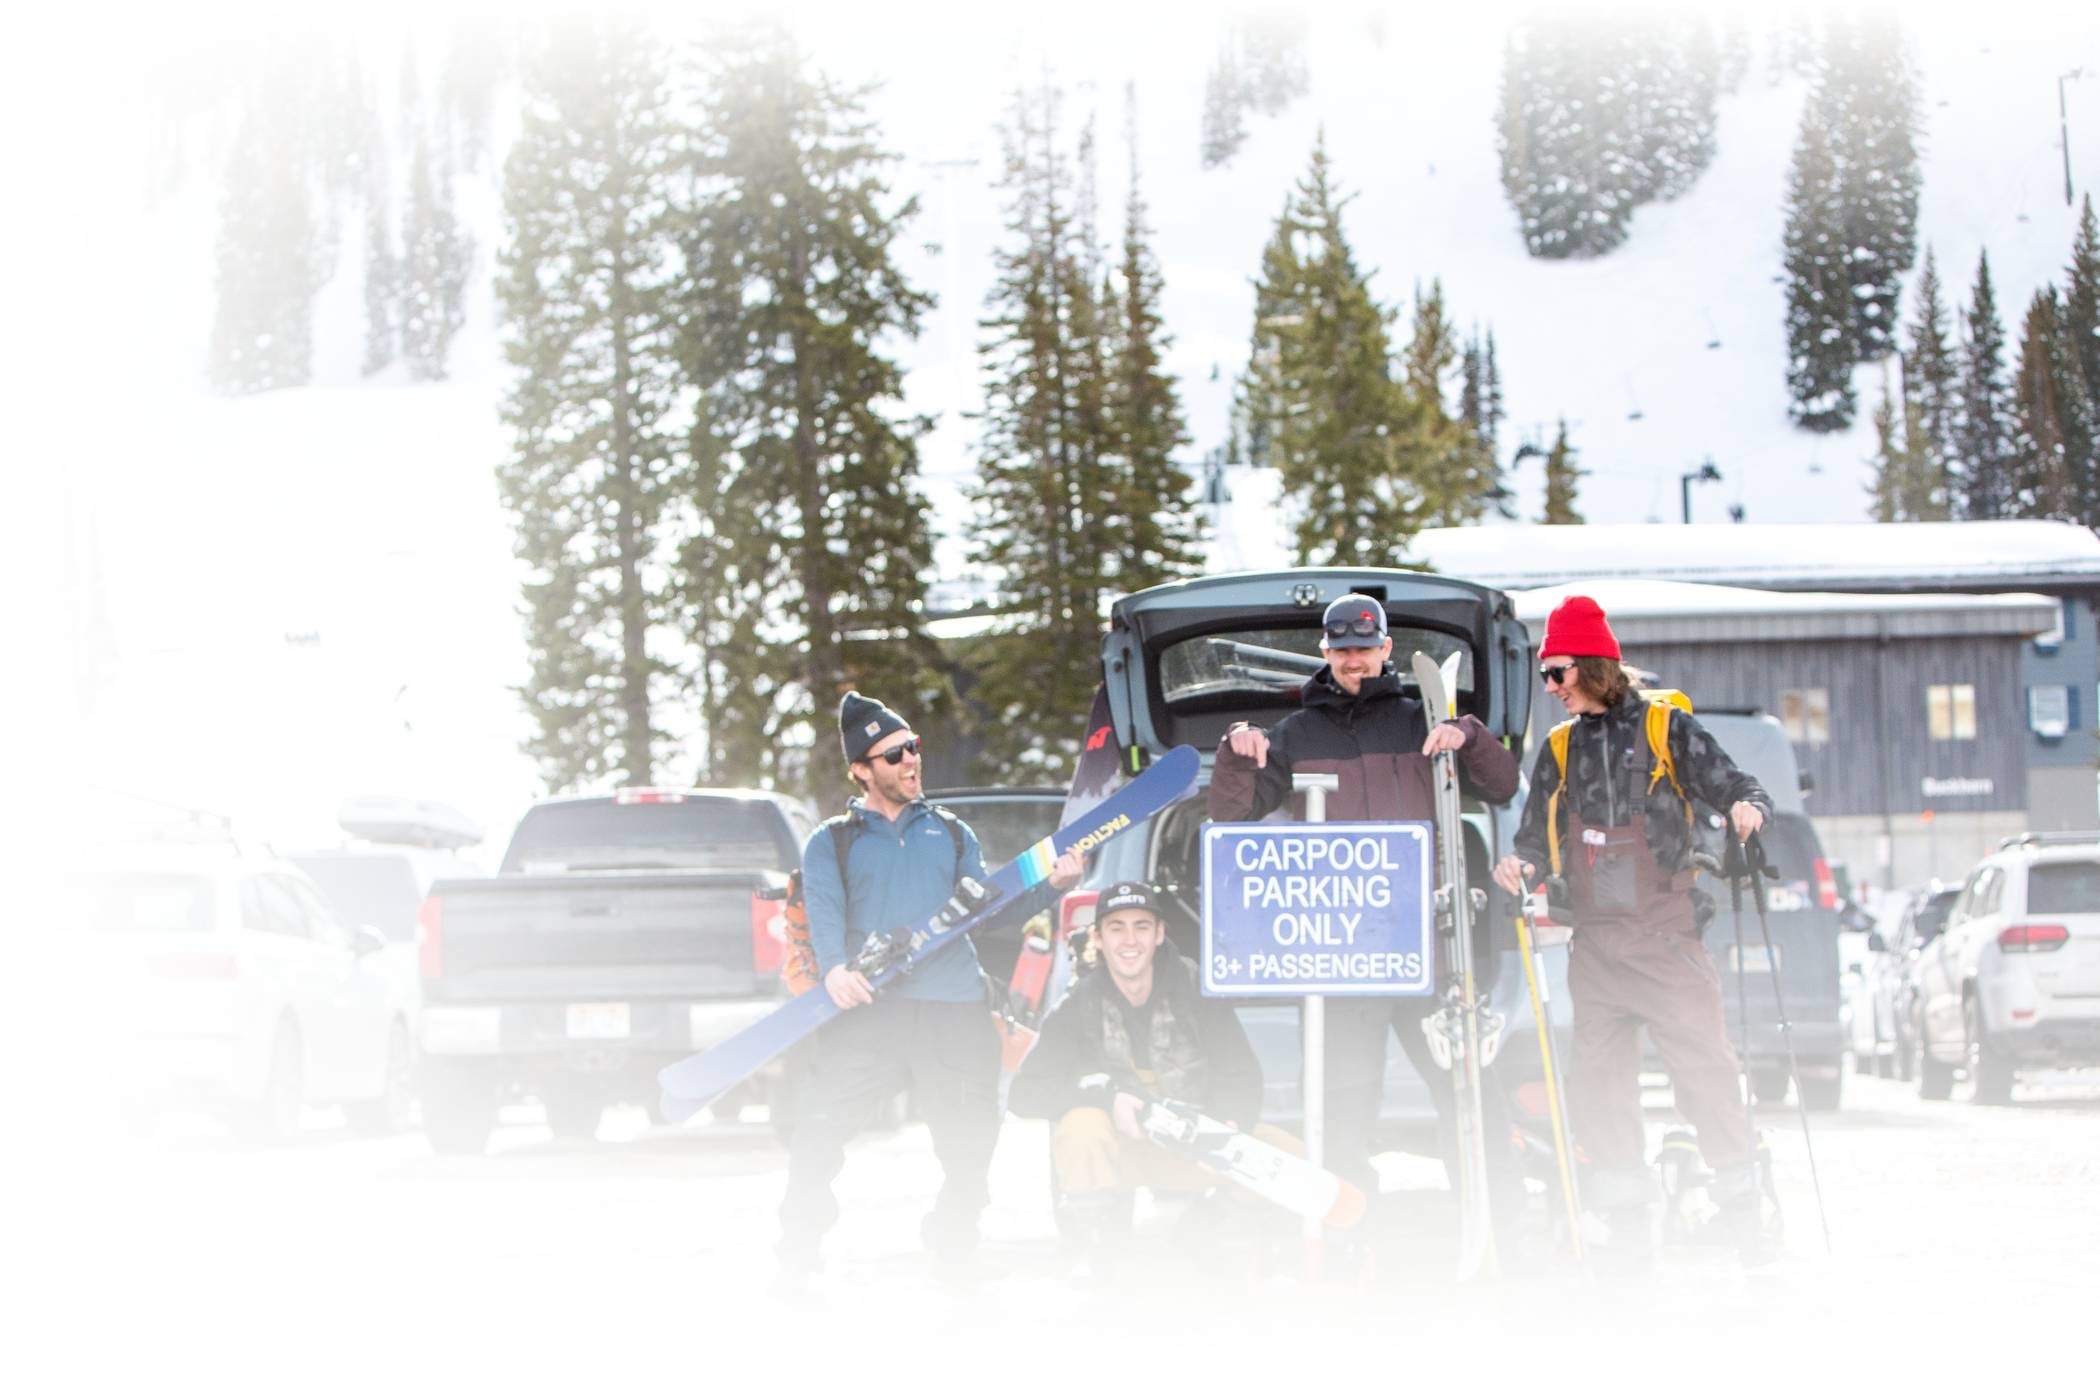 Skiers celebrate landing a great parking spot for carpooling to Alta